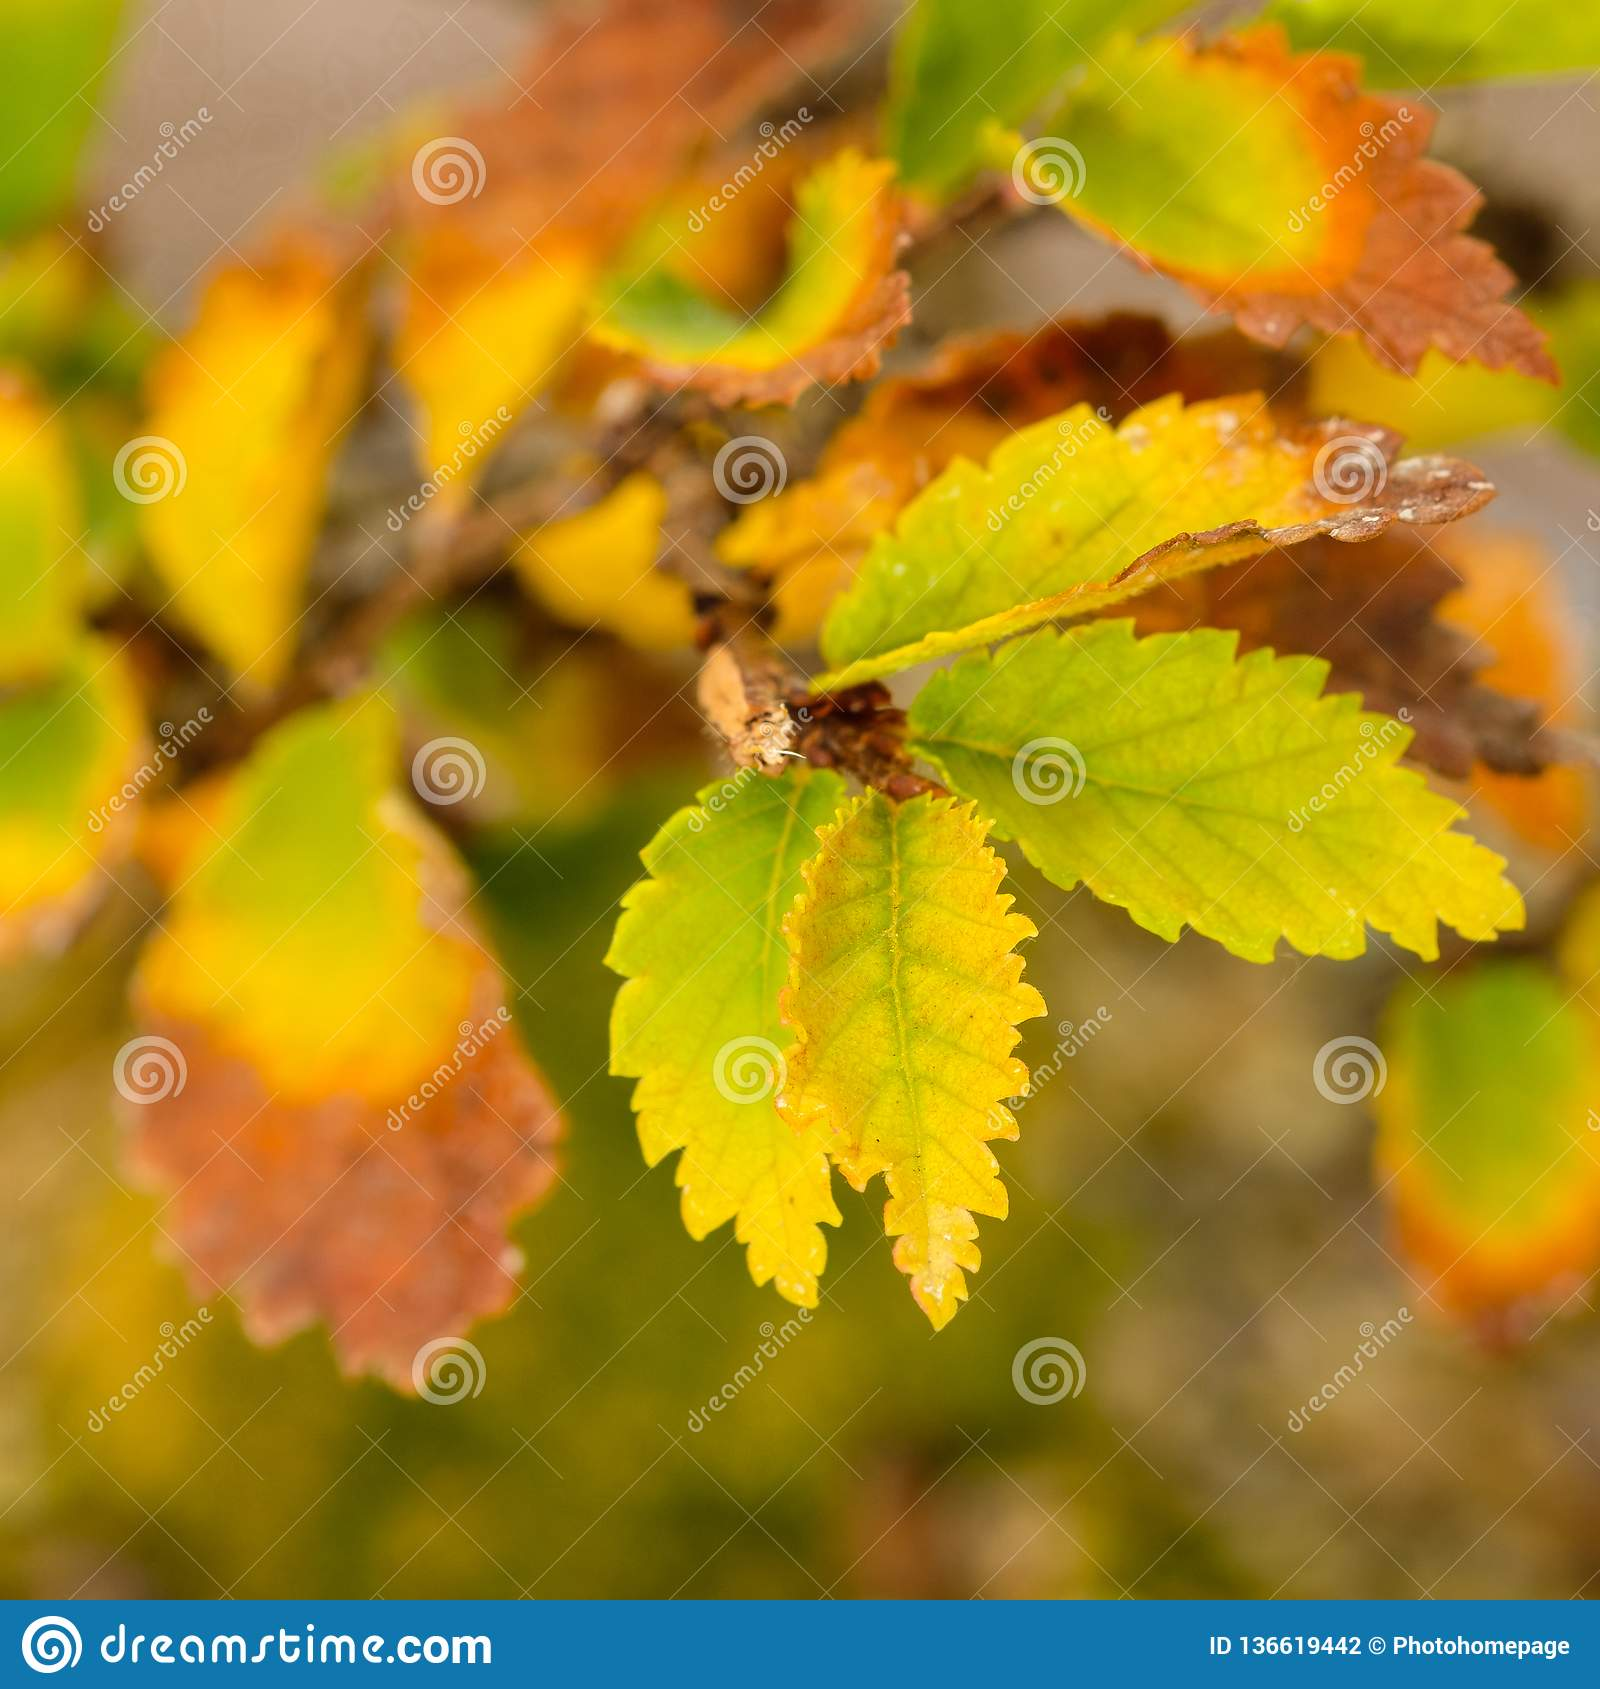 Leaves Foliage Elm Bonsai Tree In Autumn Stock Photo Image Of Parvifolia Trunk 136619442